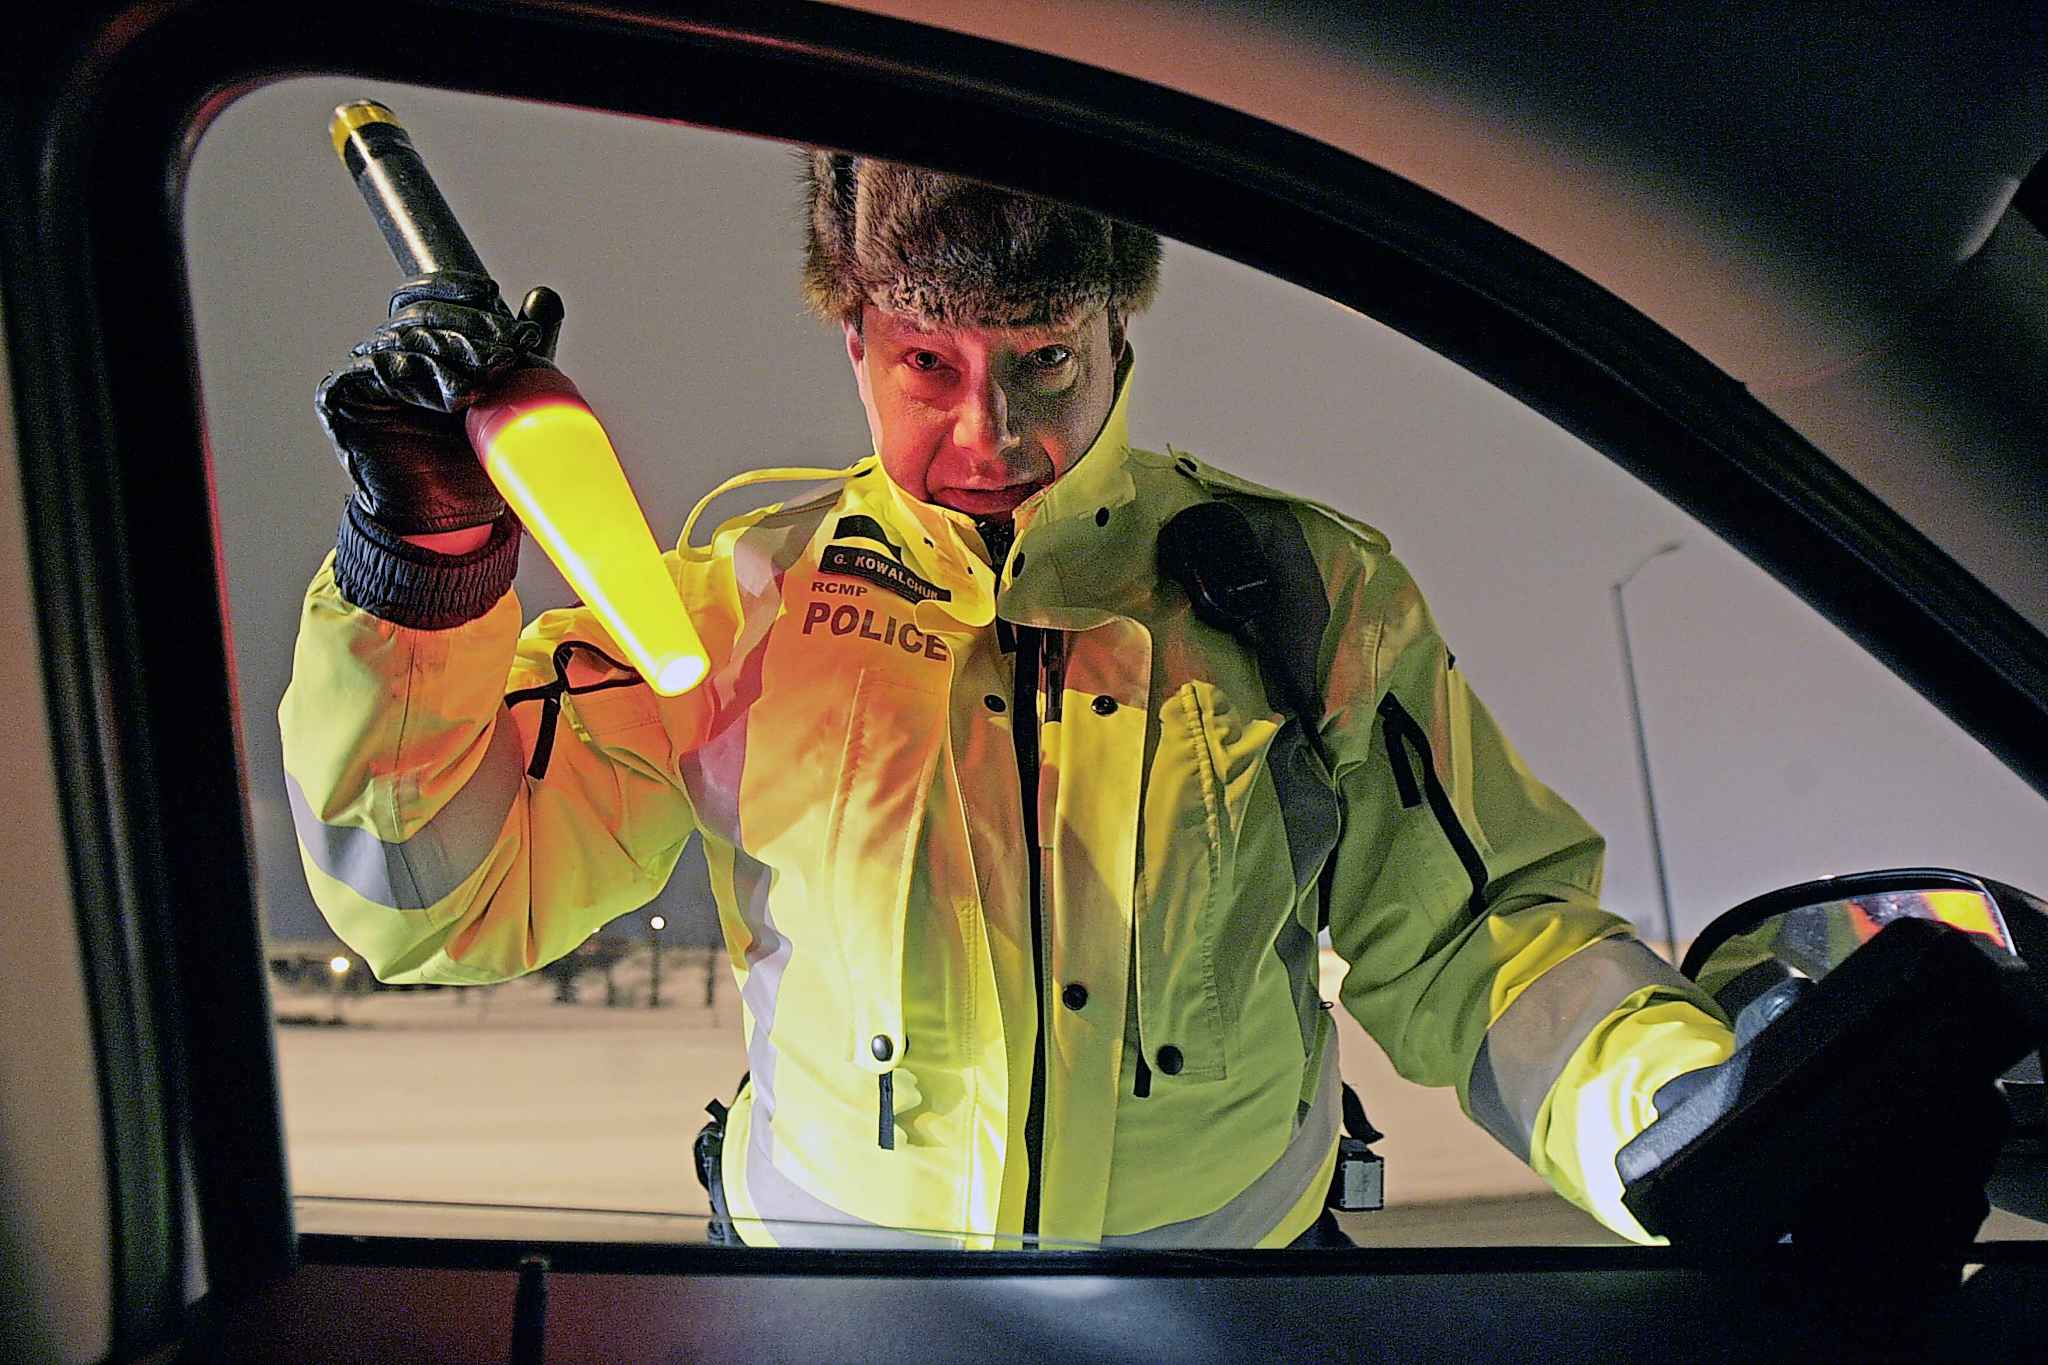 A new impaired-driving law rolled out across Canada Tuesday giving police the power to demand a breath sample, even if officers have no reason to suspect alcohol use.